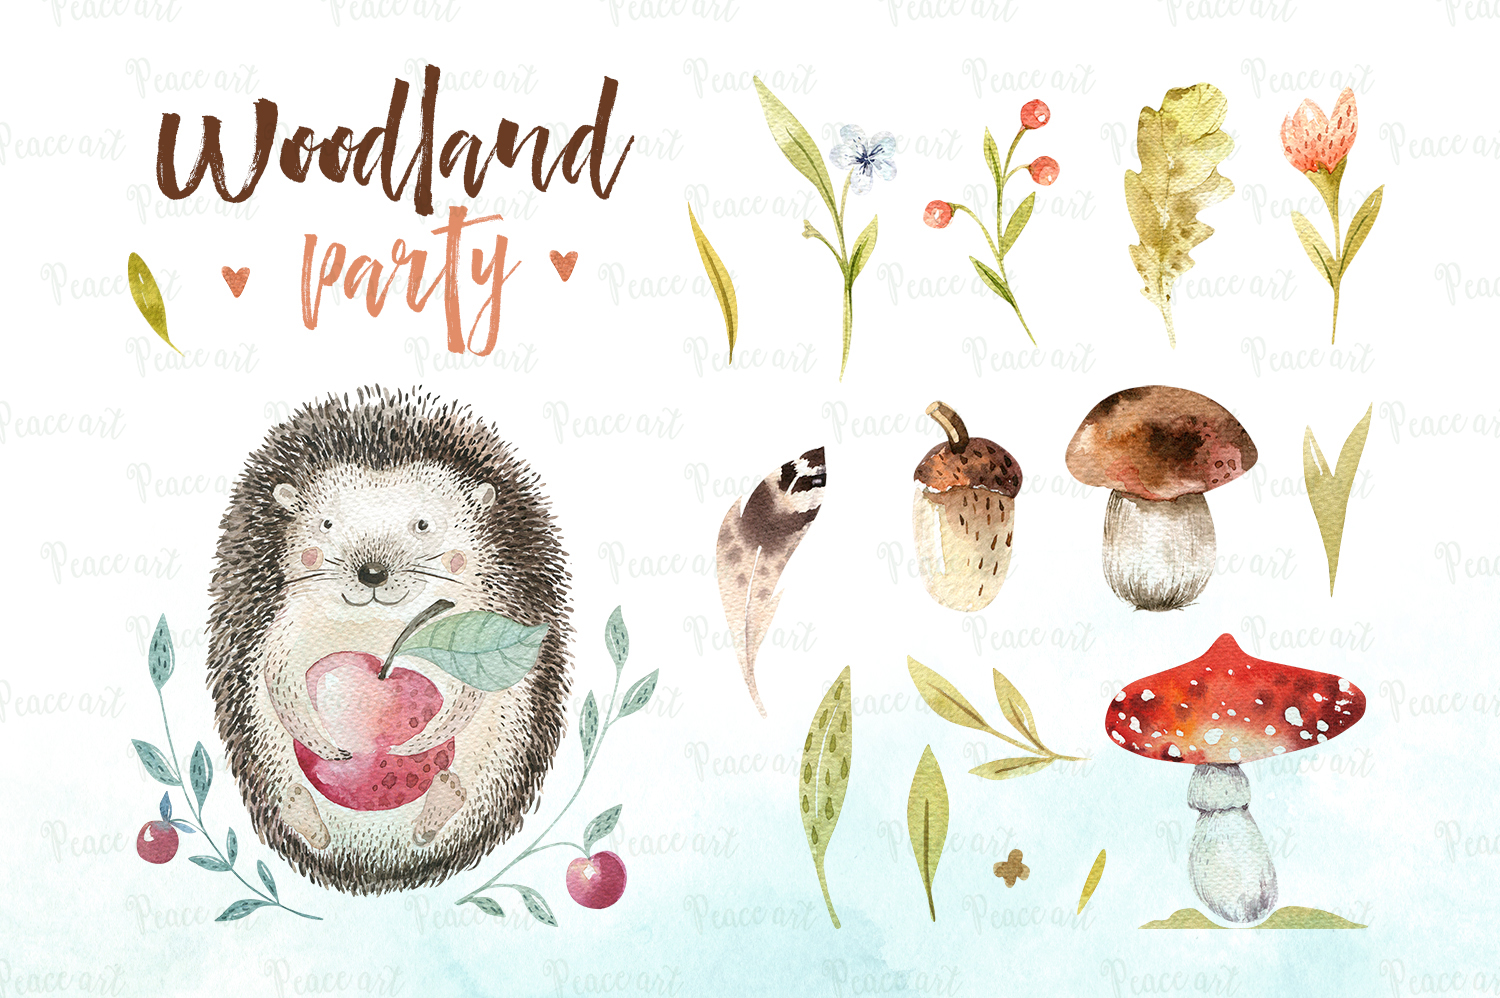 Woodland party I example image 3